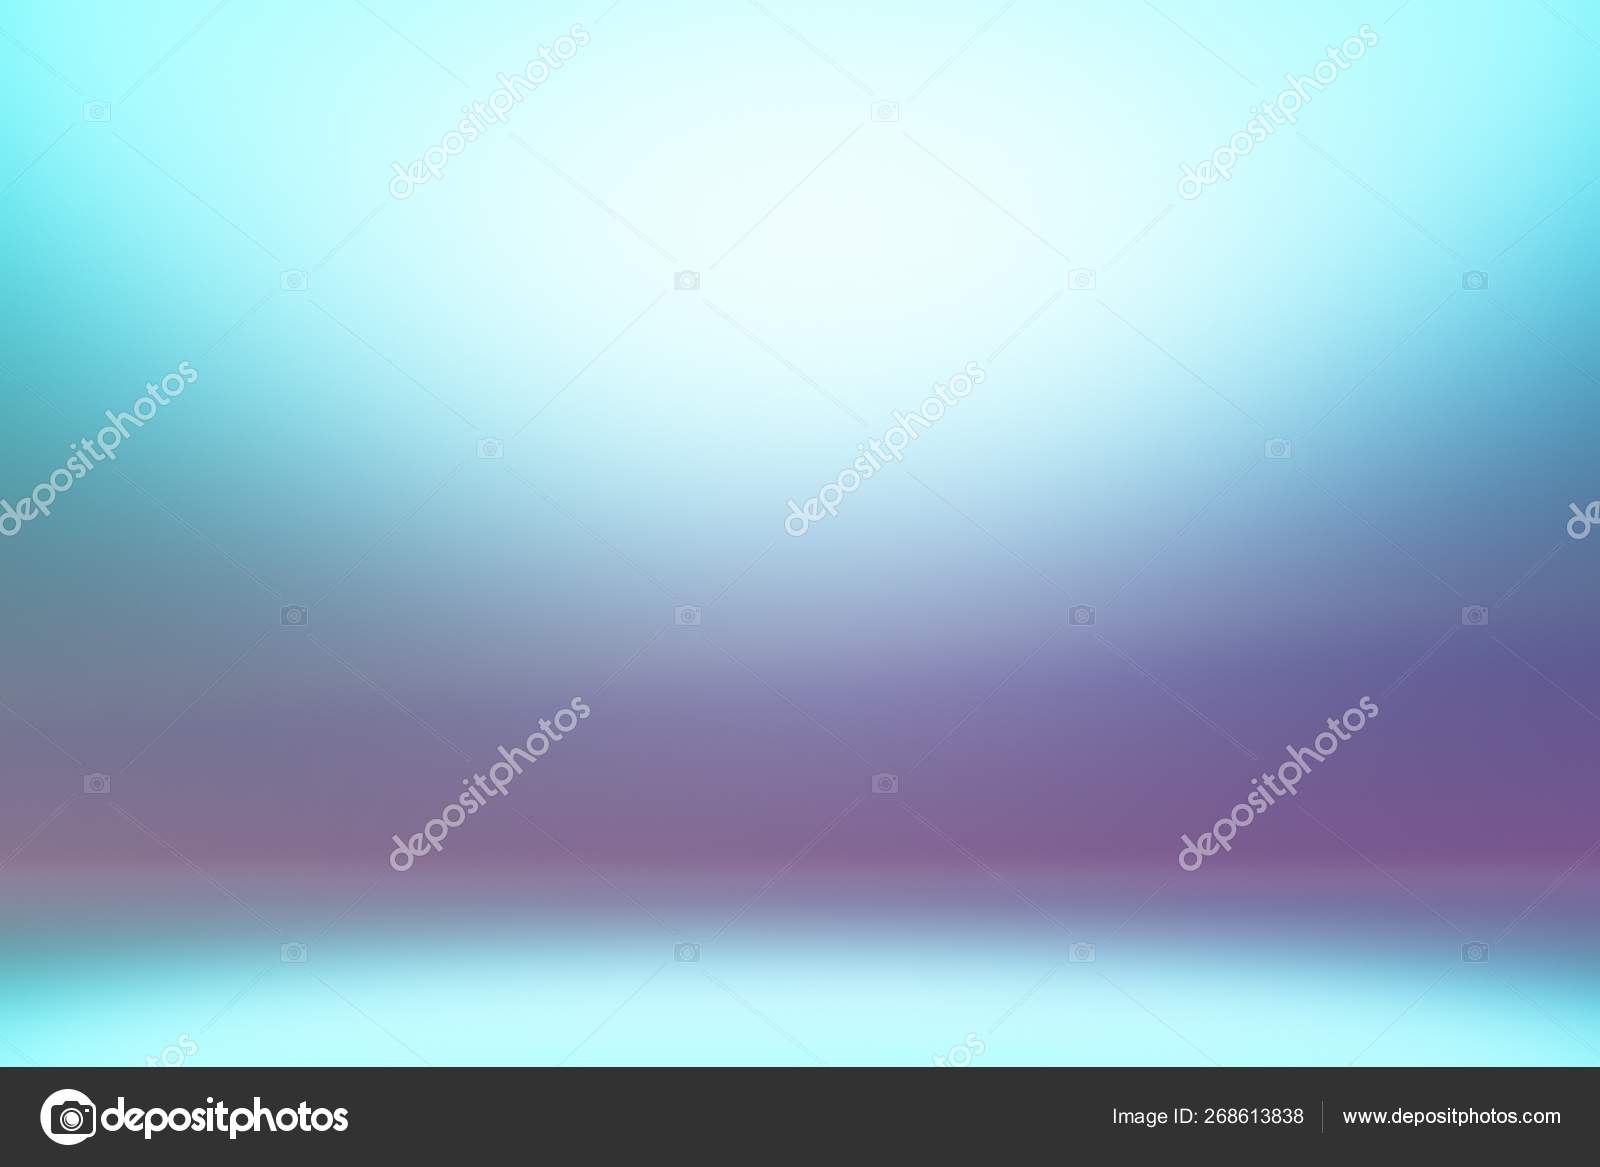 Abstract Backdrop Background Blank Blur Light Wallpaper Stock